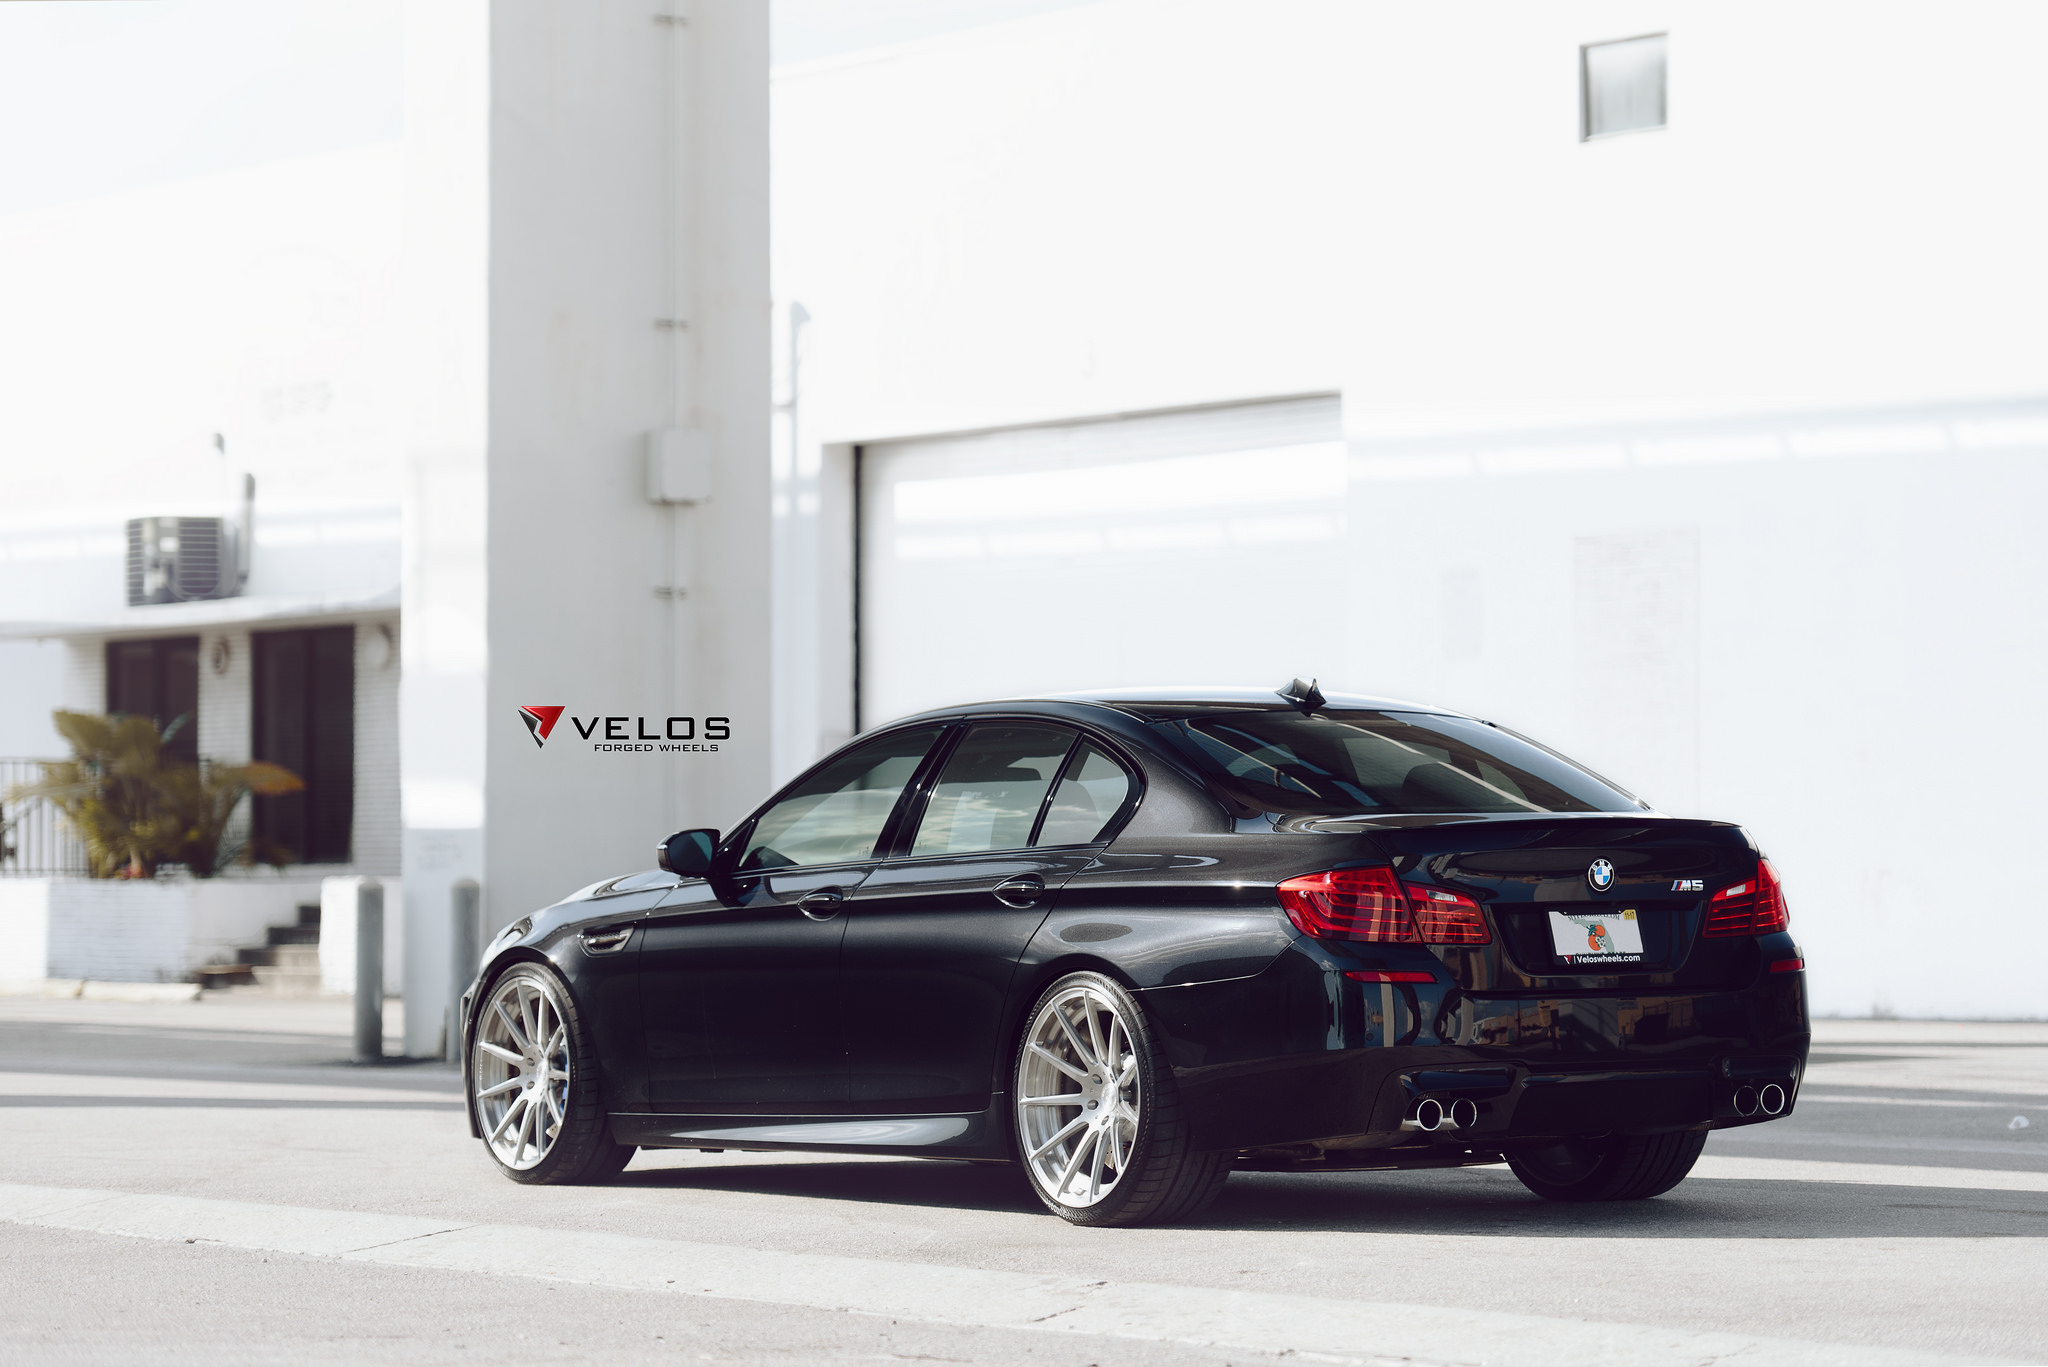 bmw f10 m5 on velos s2 2 pc forged wheels velos designwerks performance tuning autosalon. Black Bedroom Furniture Sets. Home Design Ideas